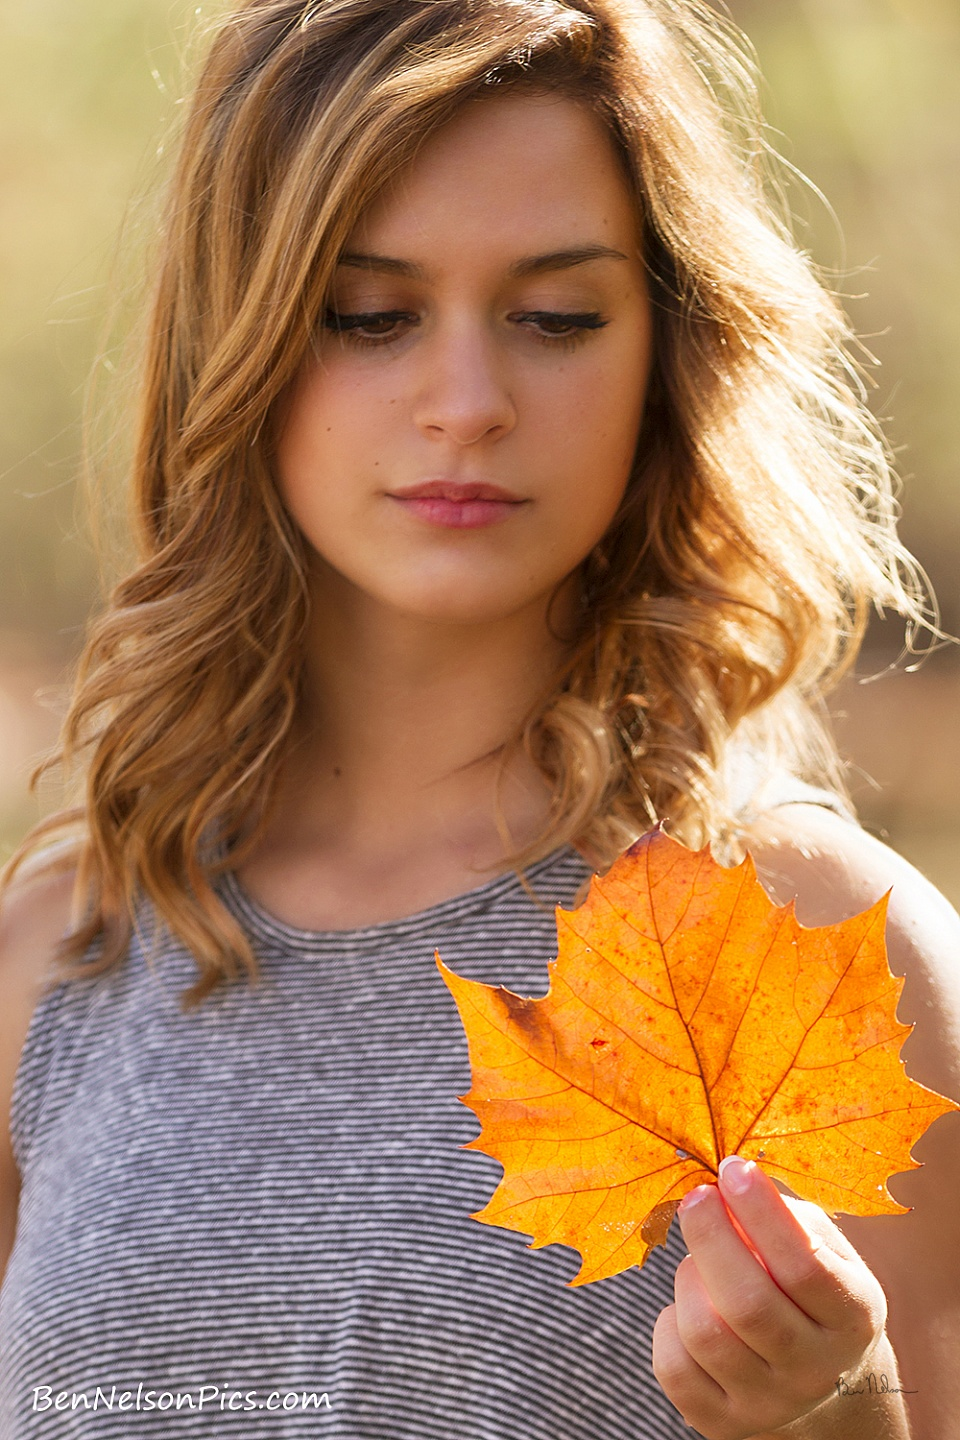 A collection of Senior Pictures and Portraits in the Springfield Missouri area by Ben Nelson - Brianna Logan Senior Picture With Fall Leaf